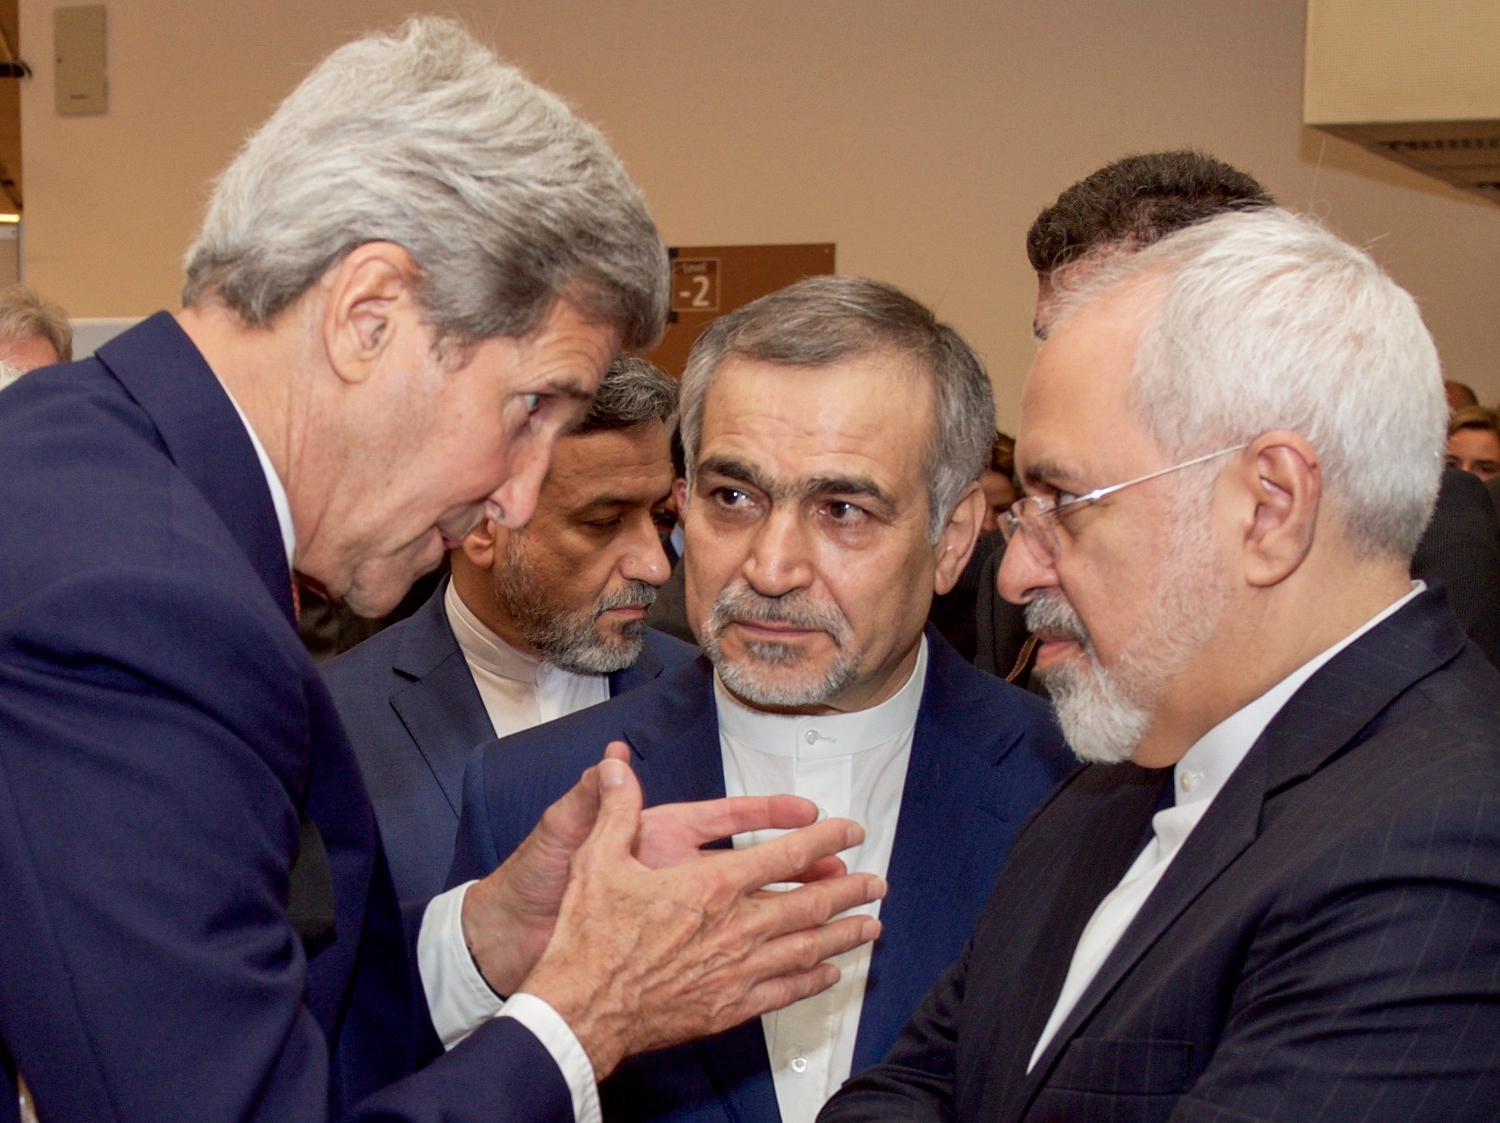 john_kerry_speaks_with_hossein_fereydoun_and_javad_zarif_before_press_conference_in_vienna_19663913956_cropped